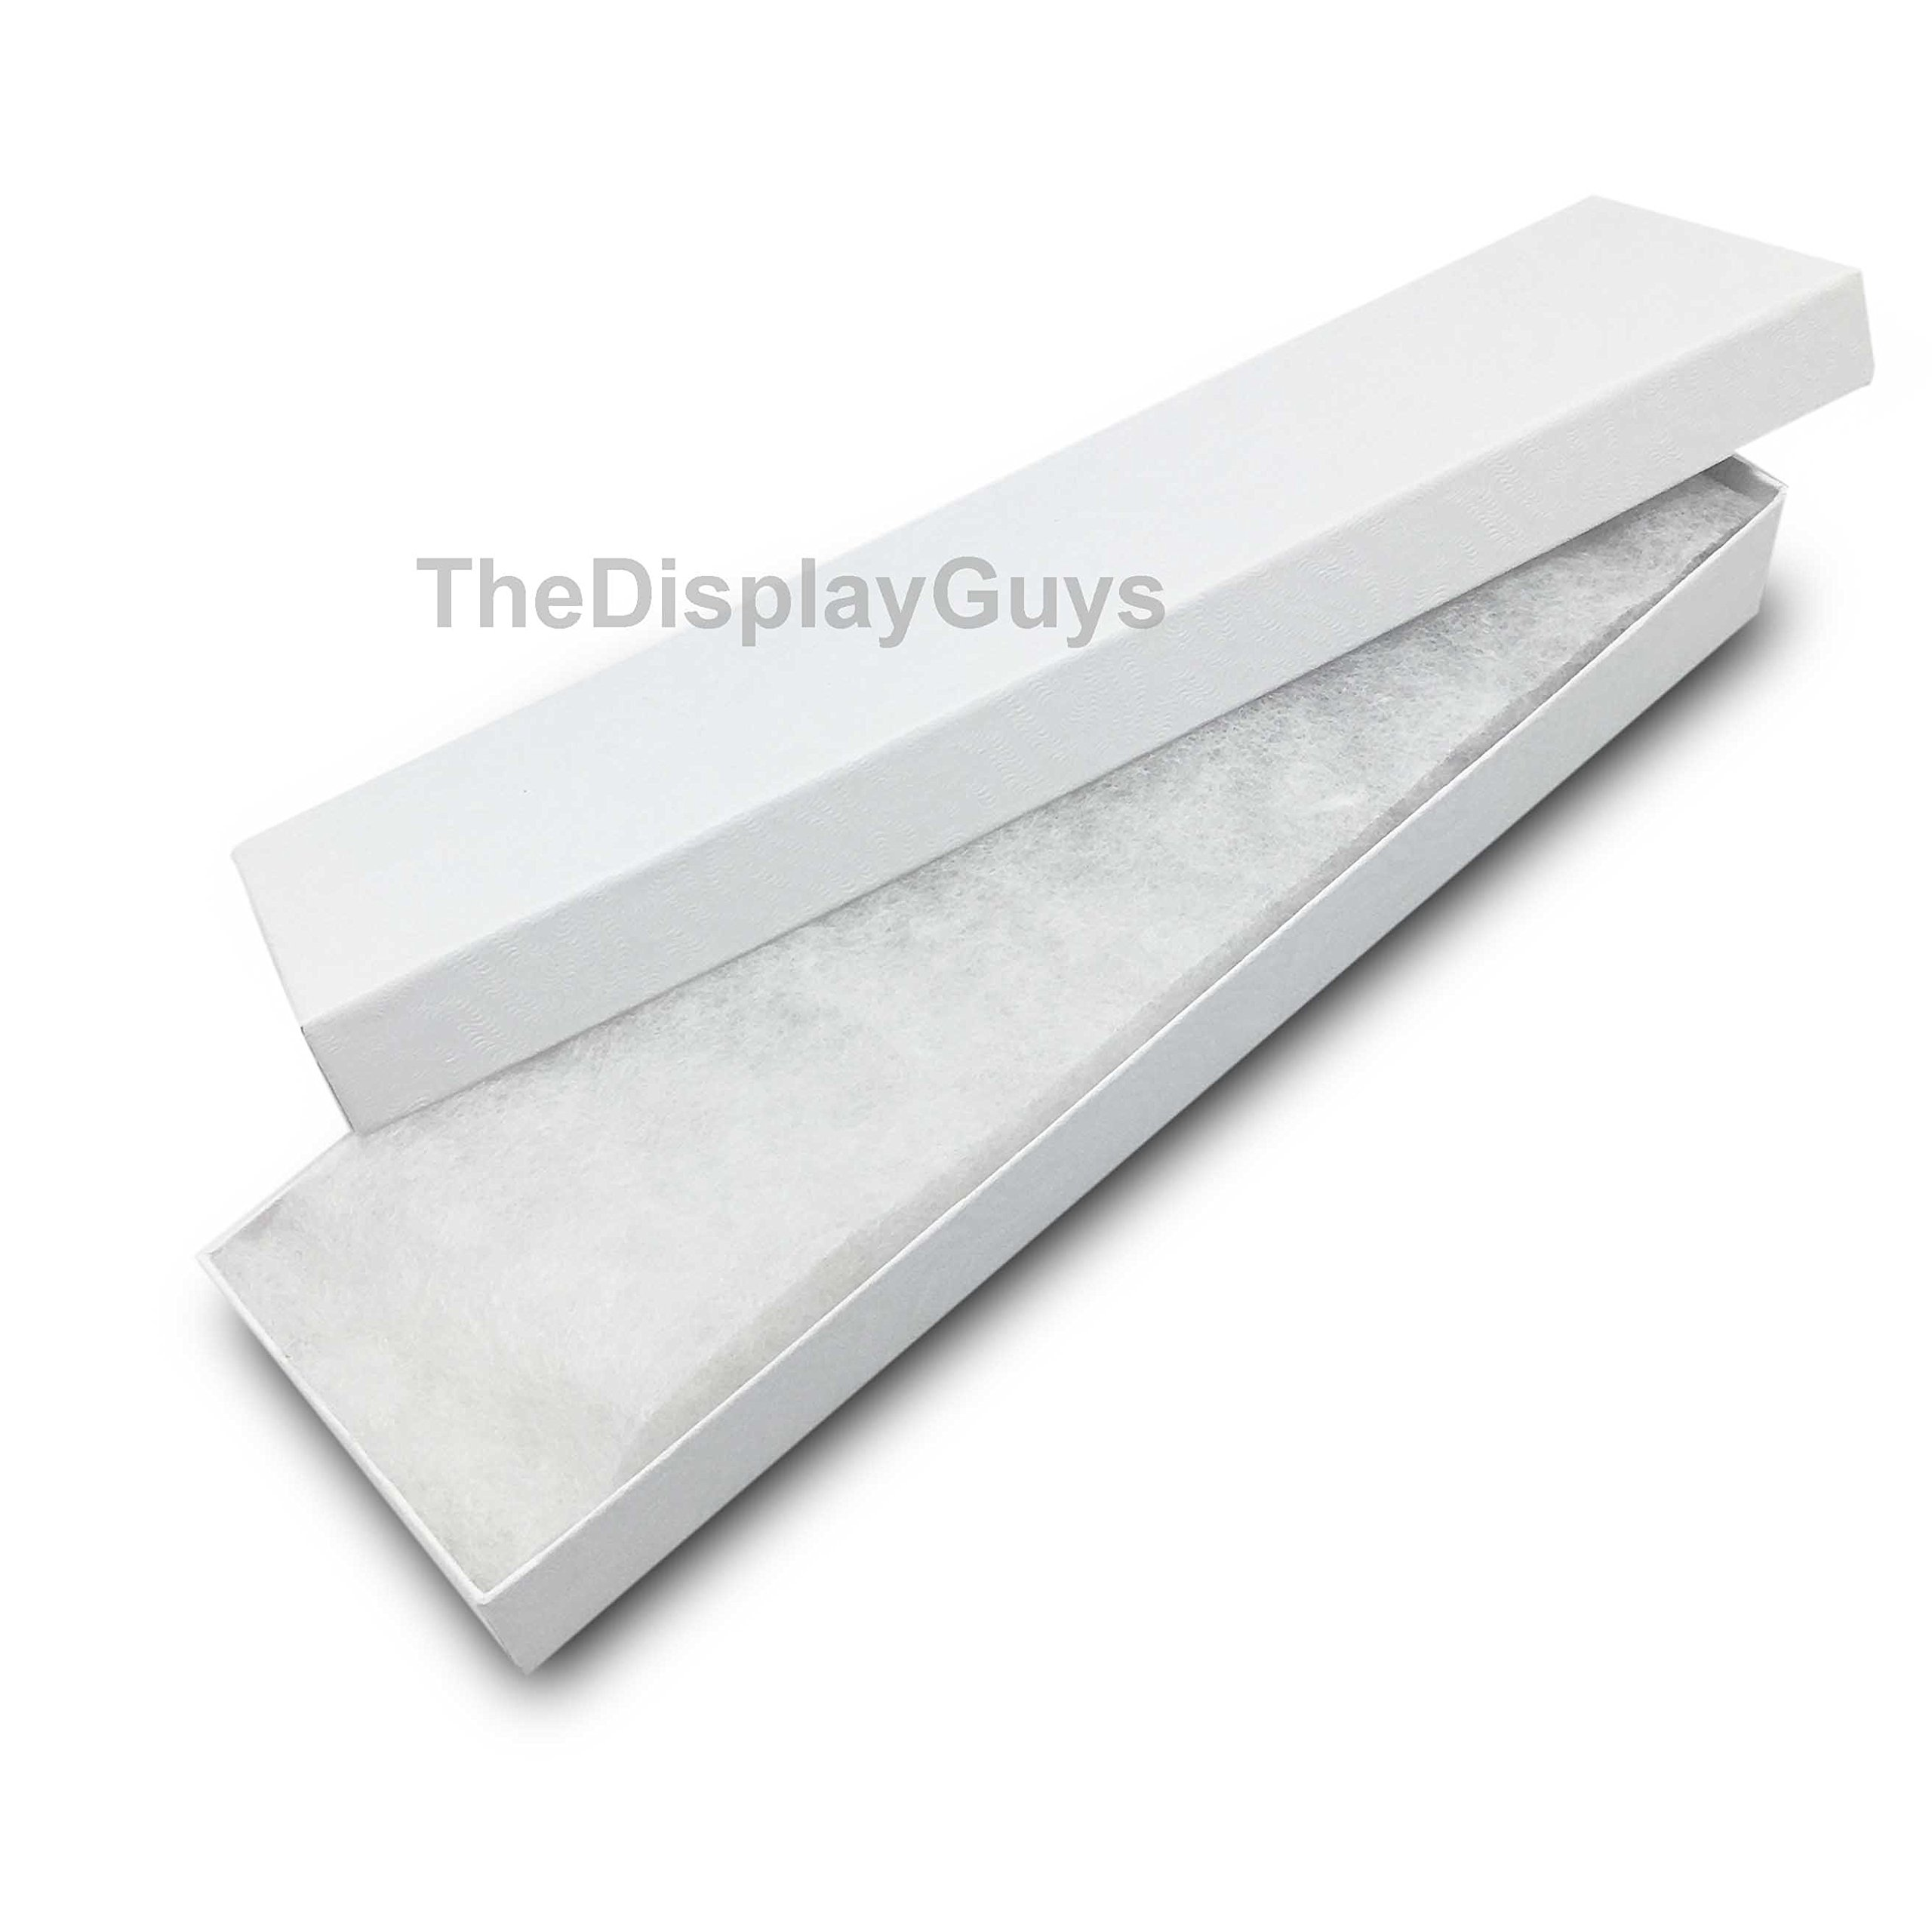 The Display Guys, Pack of 25 White 8x2x1 inches Cotton Filled Paper Jewelry Box Gift Display Case(#82)